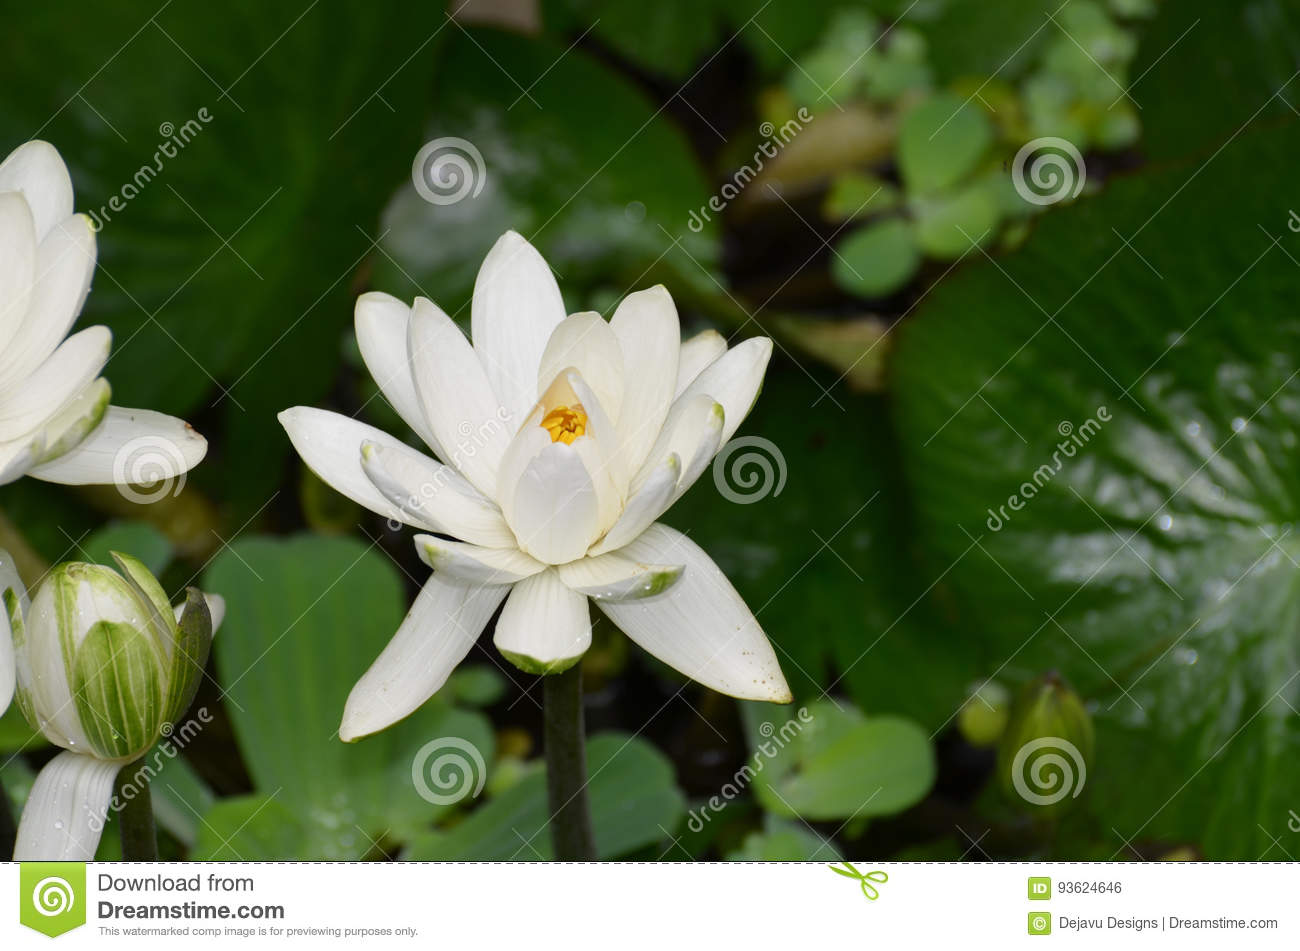 blooming white indian lotus flower in a water garden stock photo